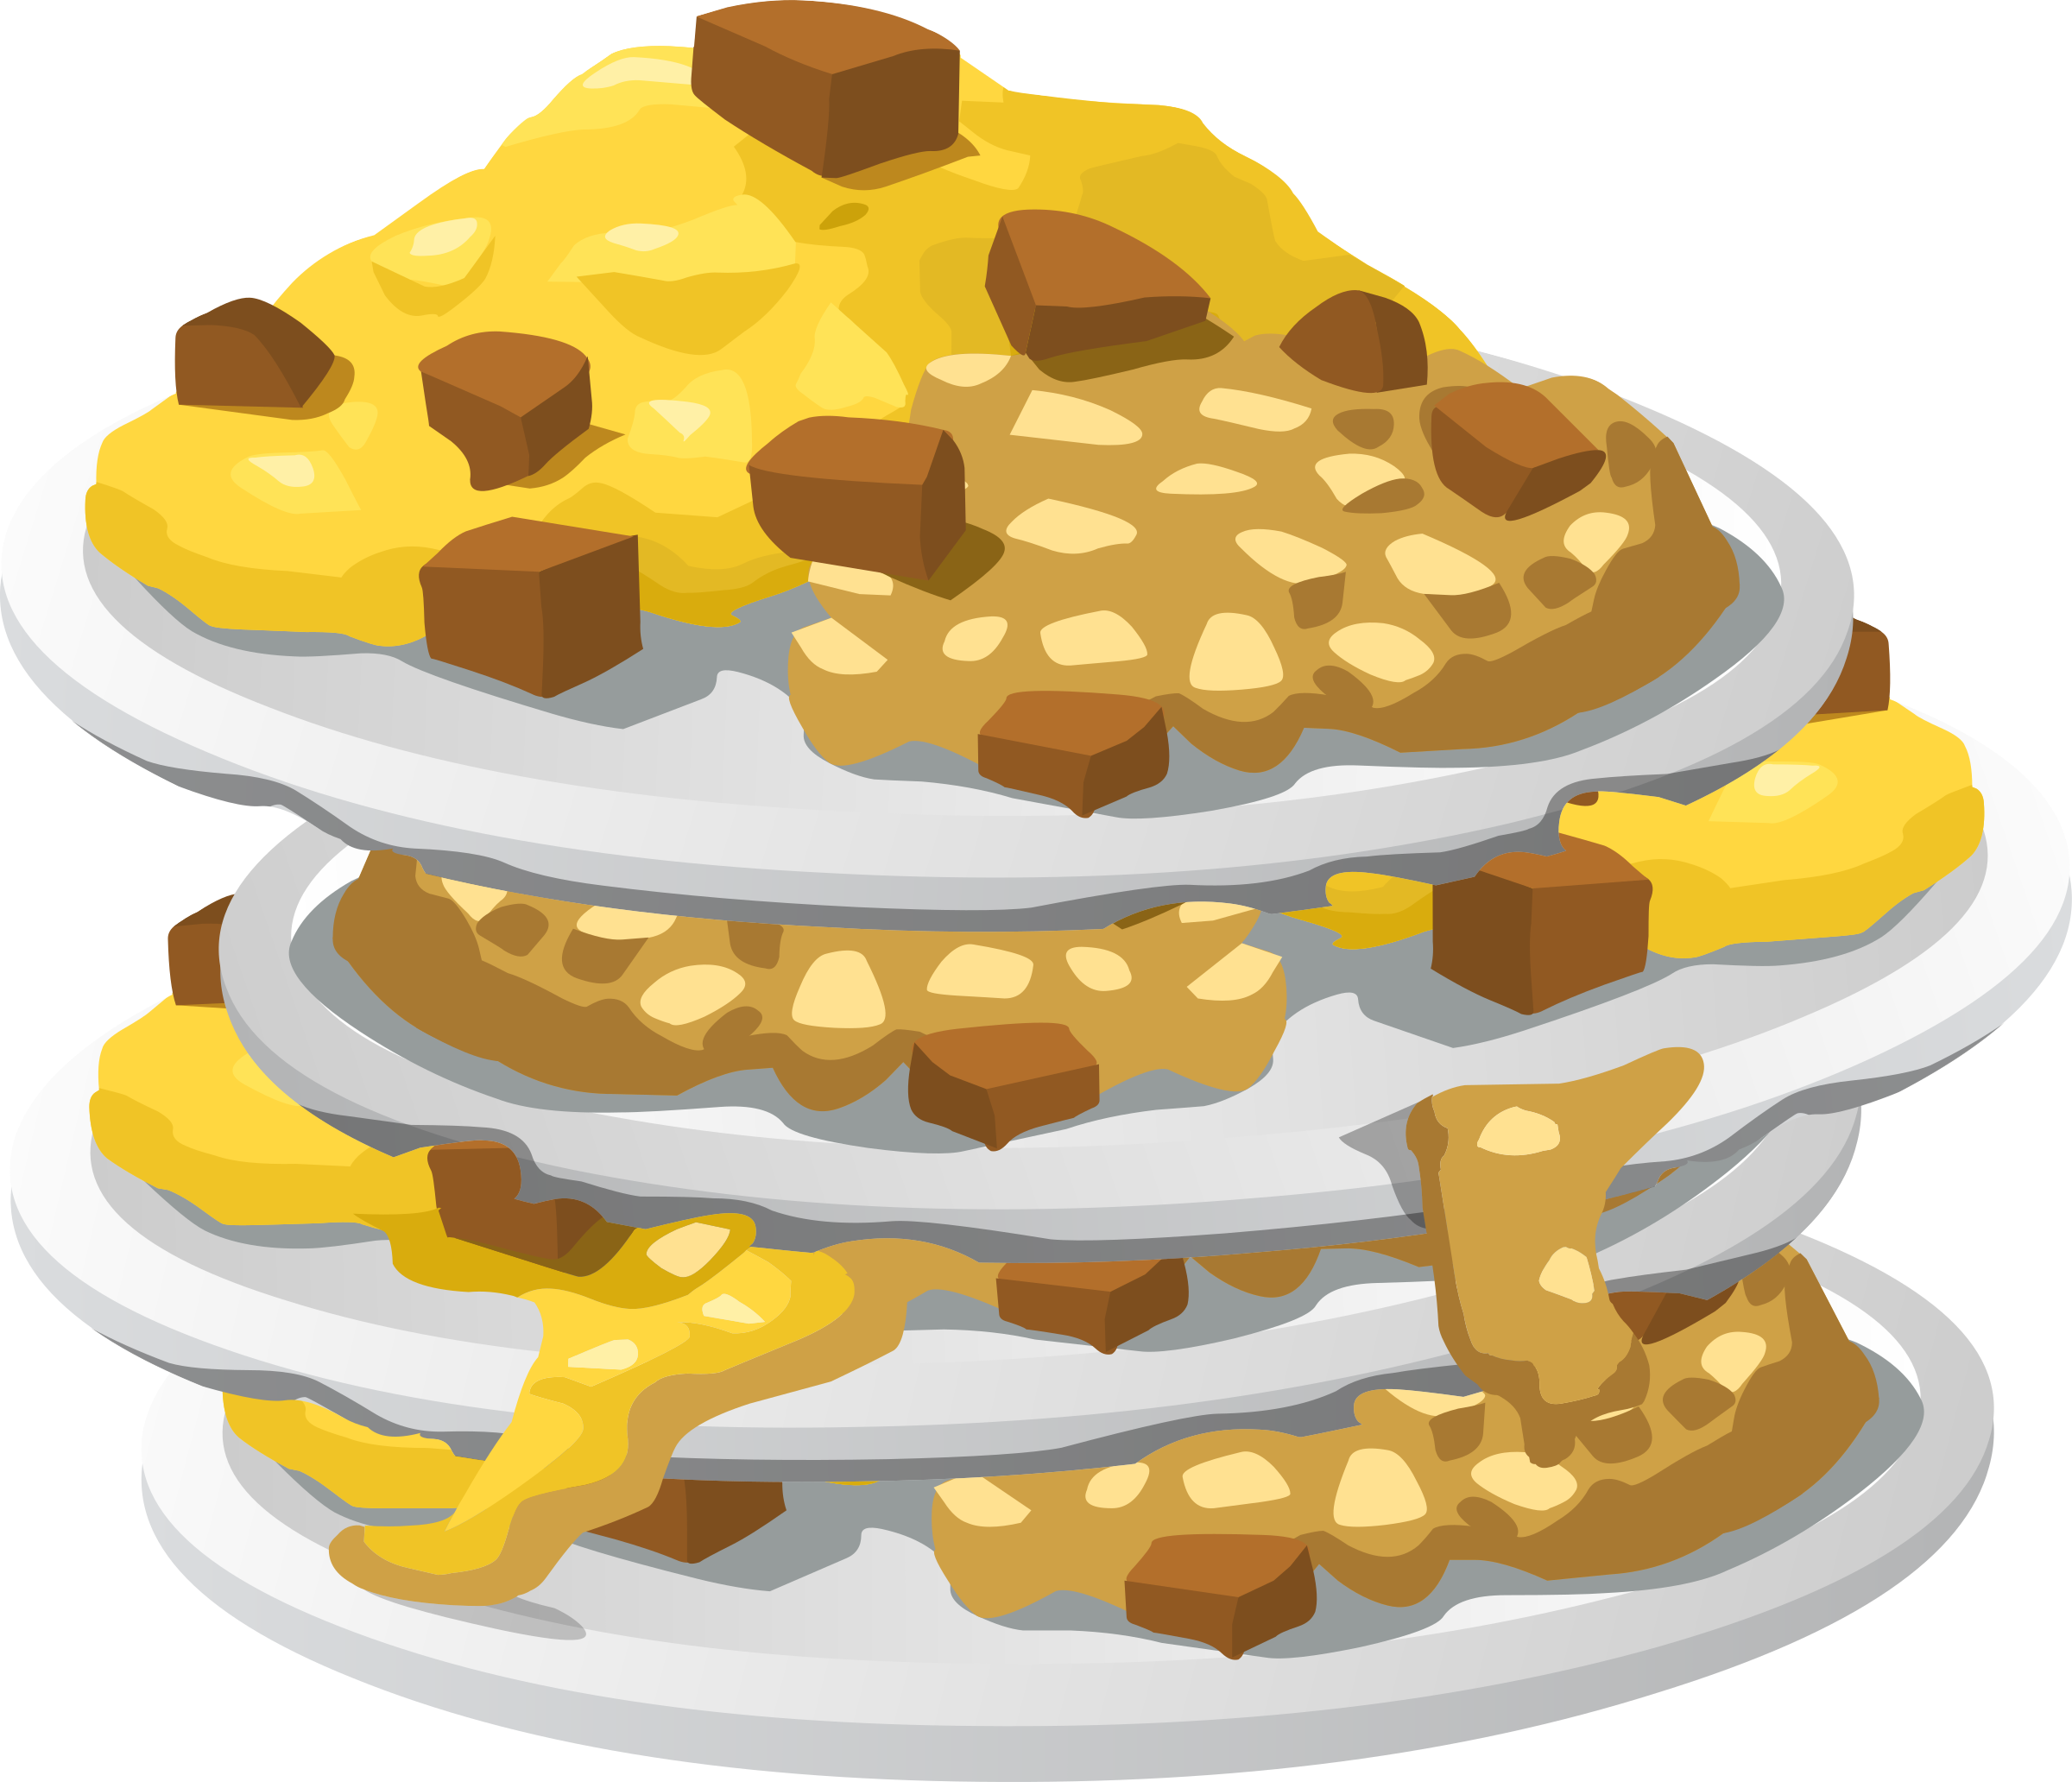 Food messy up big. Foods clipart fry